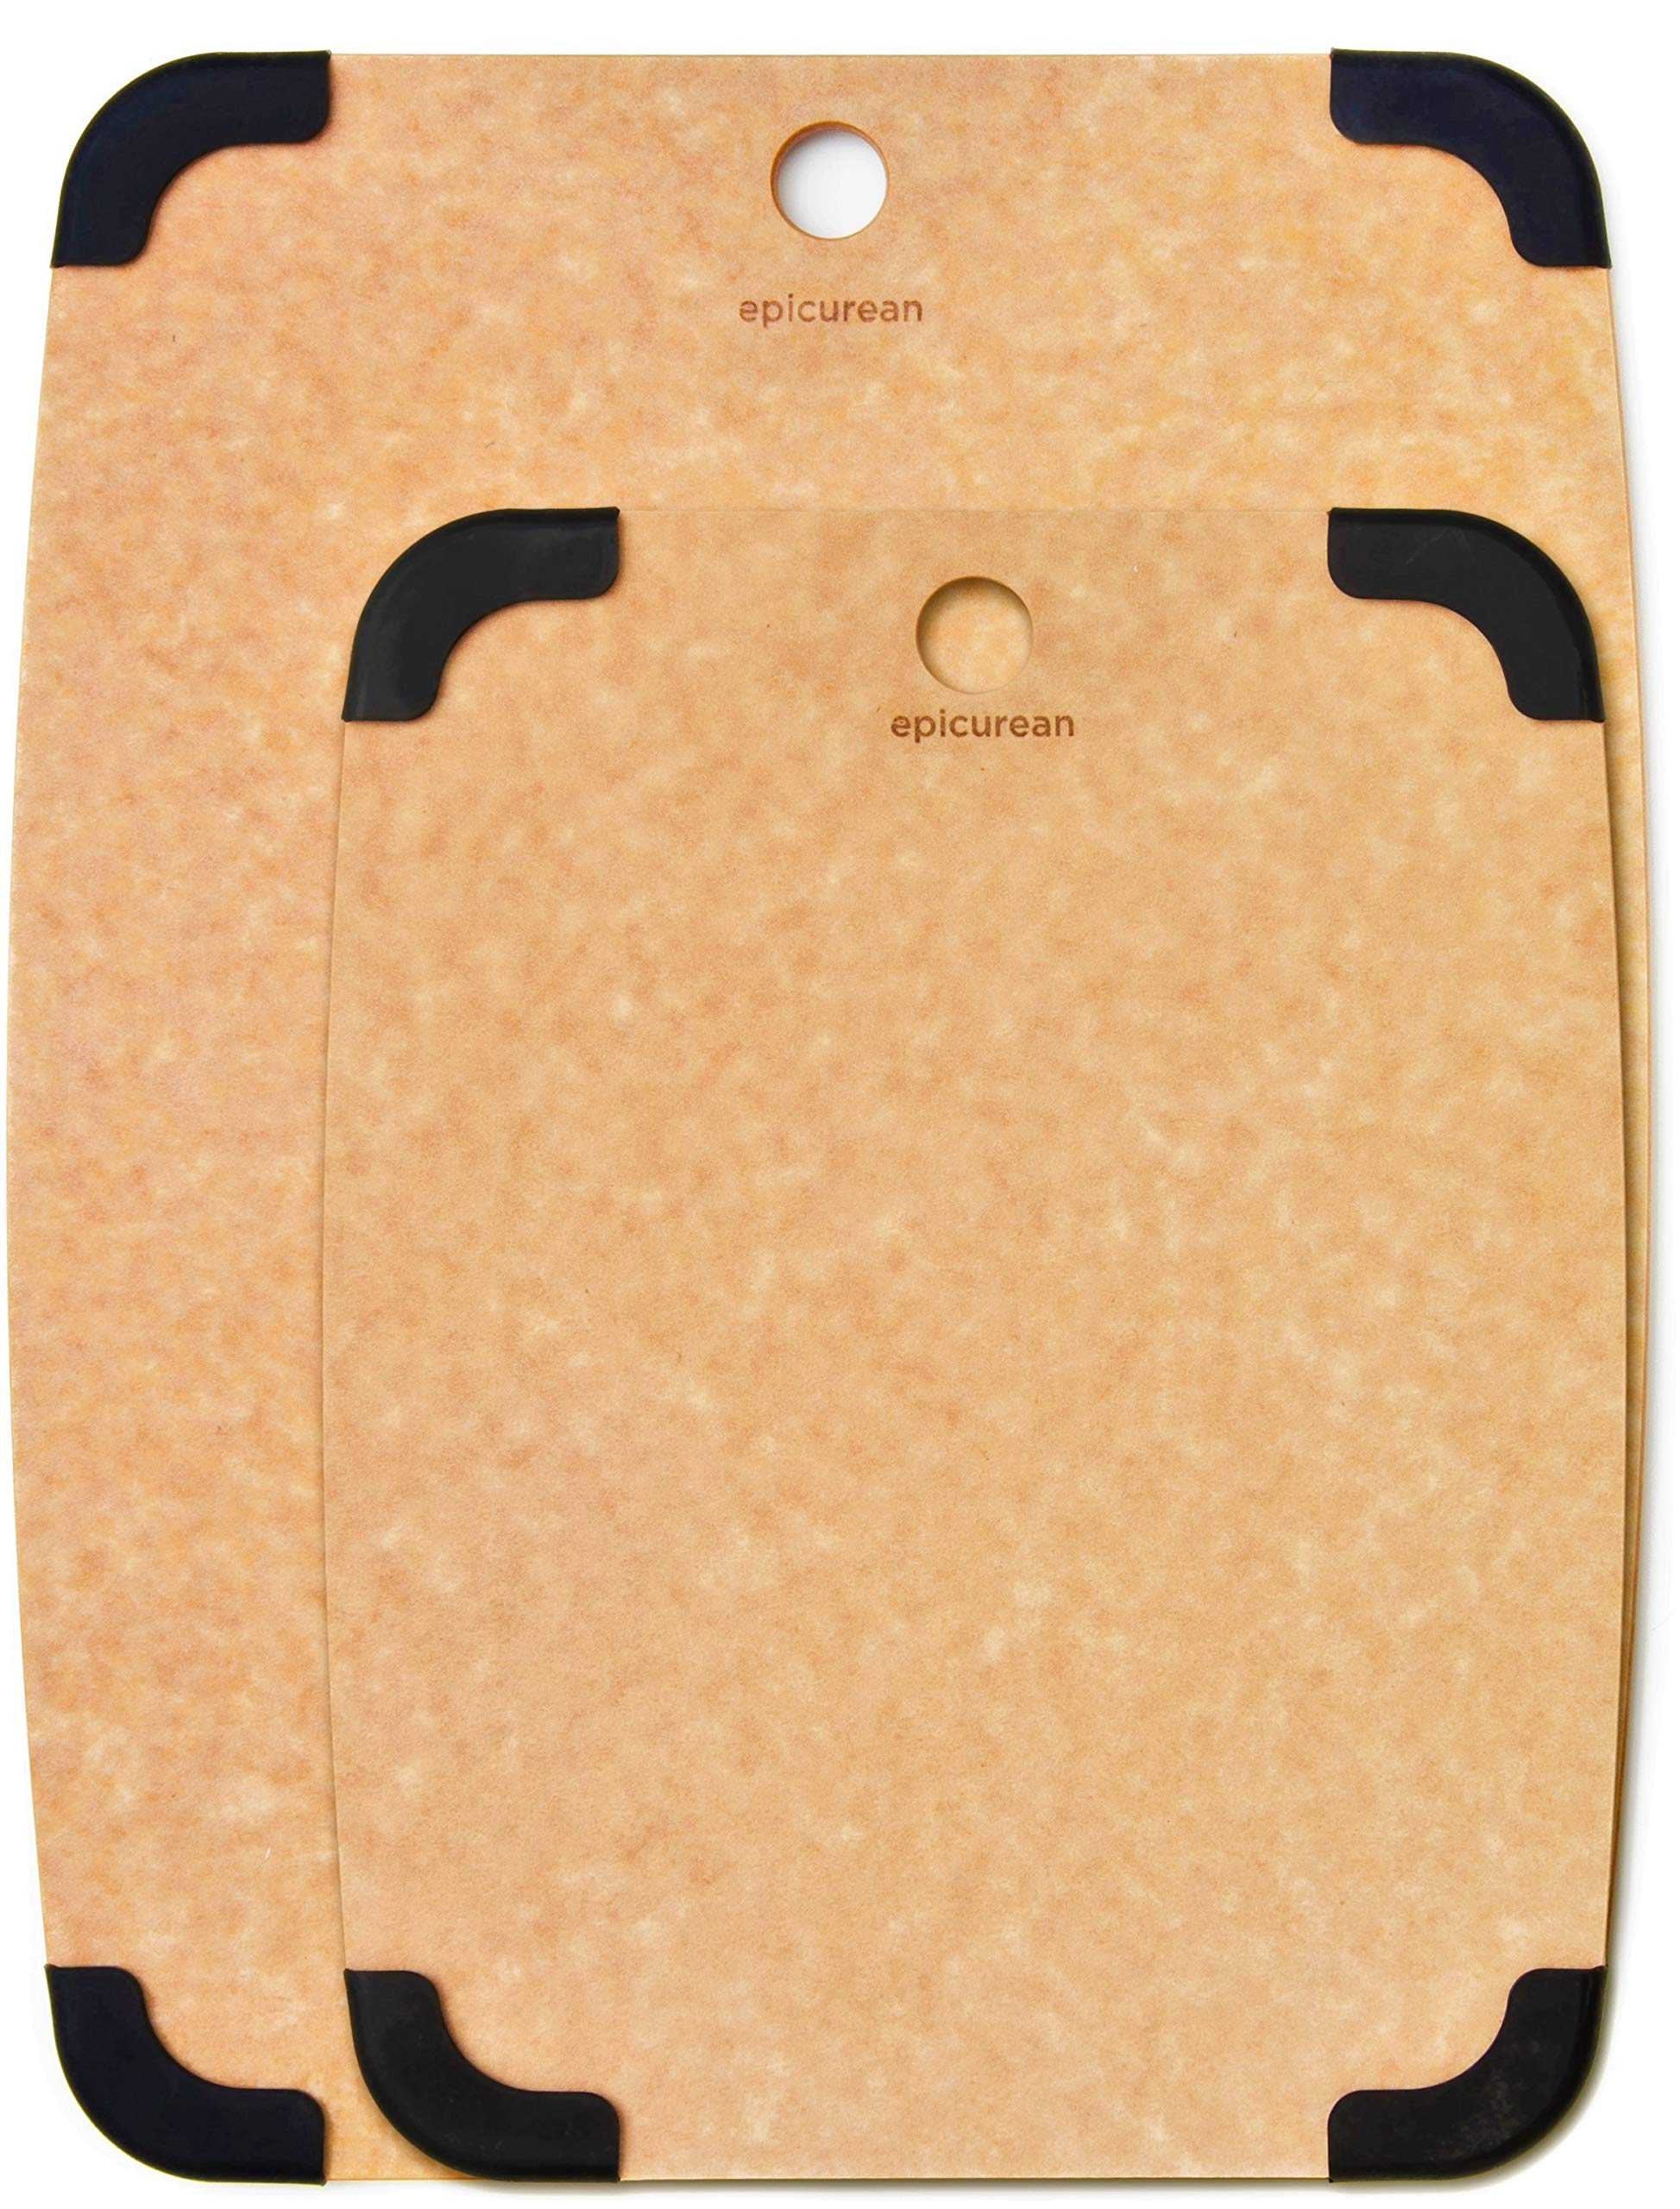 Epicurean Cutting Board Set, Two Non Slip Boards 15'' X 10'' and 11.5'' X 9'' (Natural/Slate), Natural Wood Fiber Composite, Reversible, Thin, Non-Porous Dishwasher Safe, NSF Approved - Made in USA